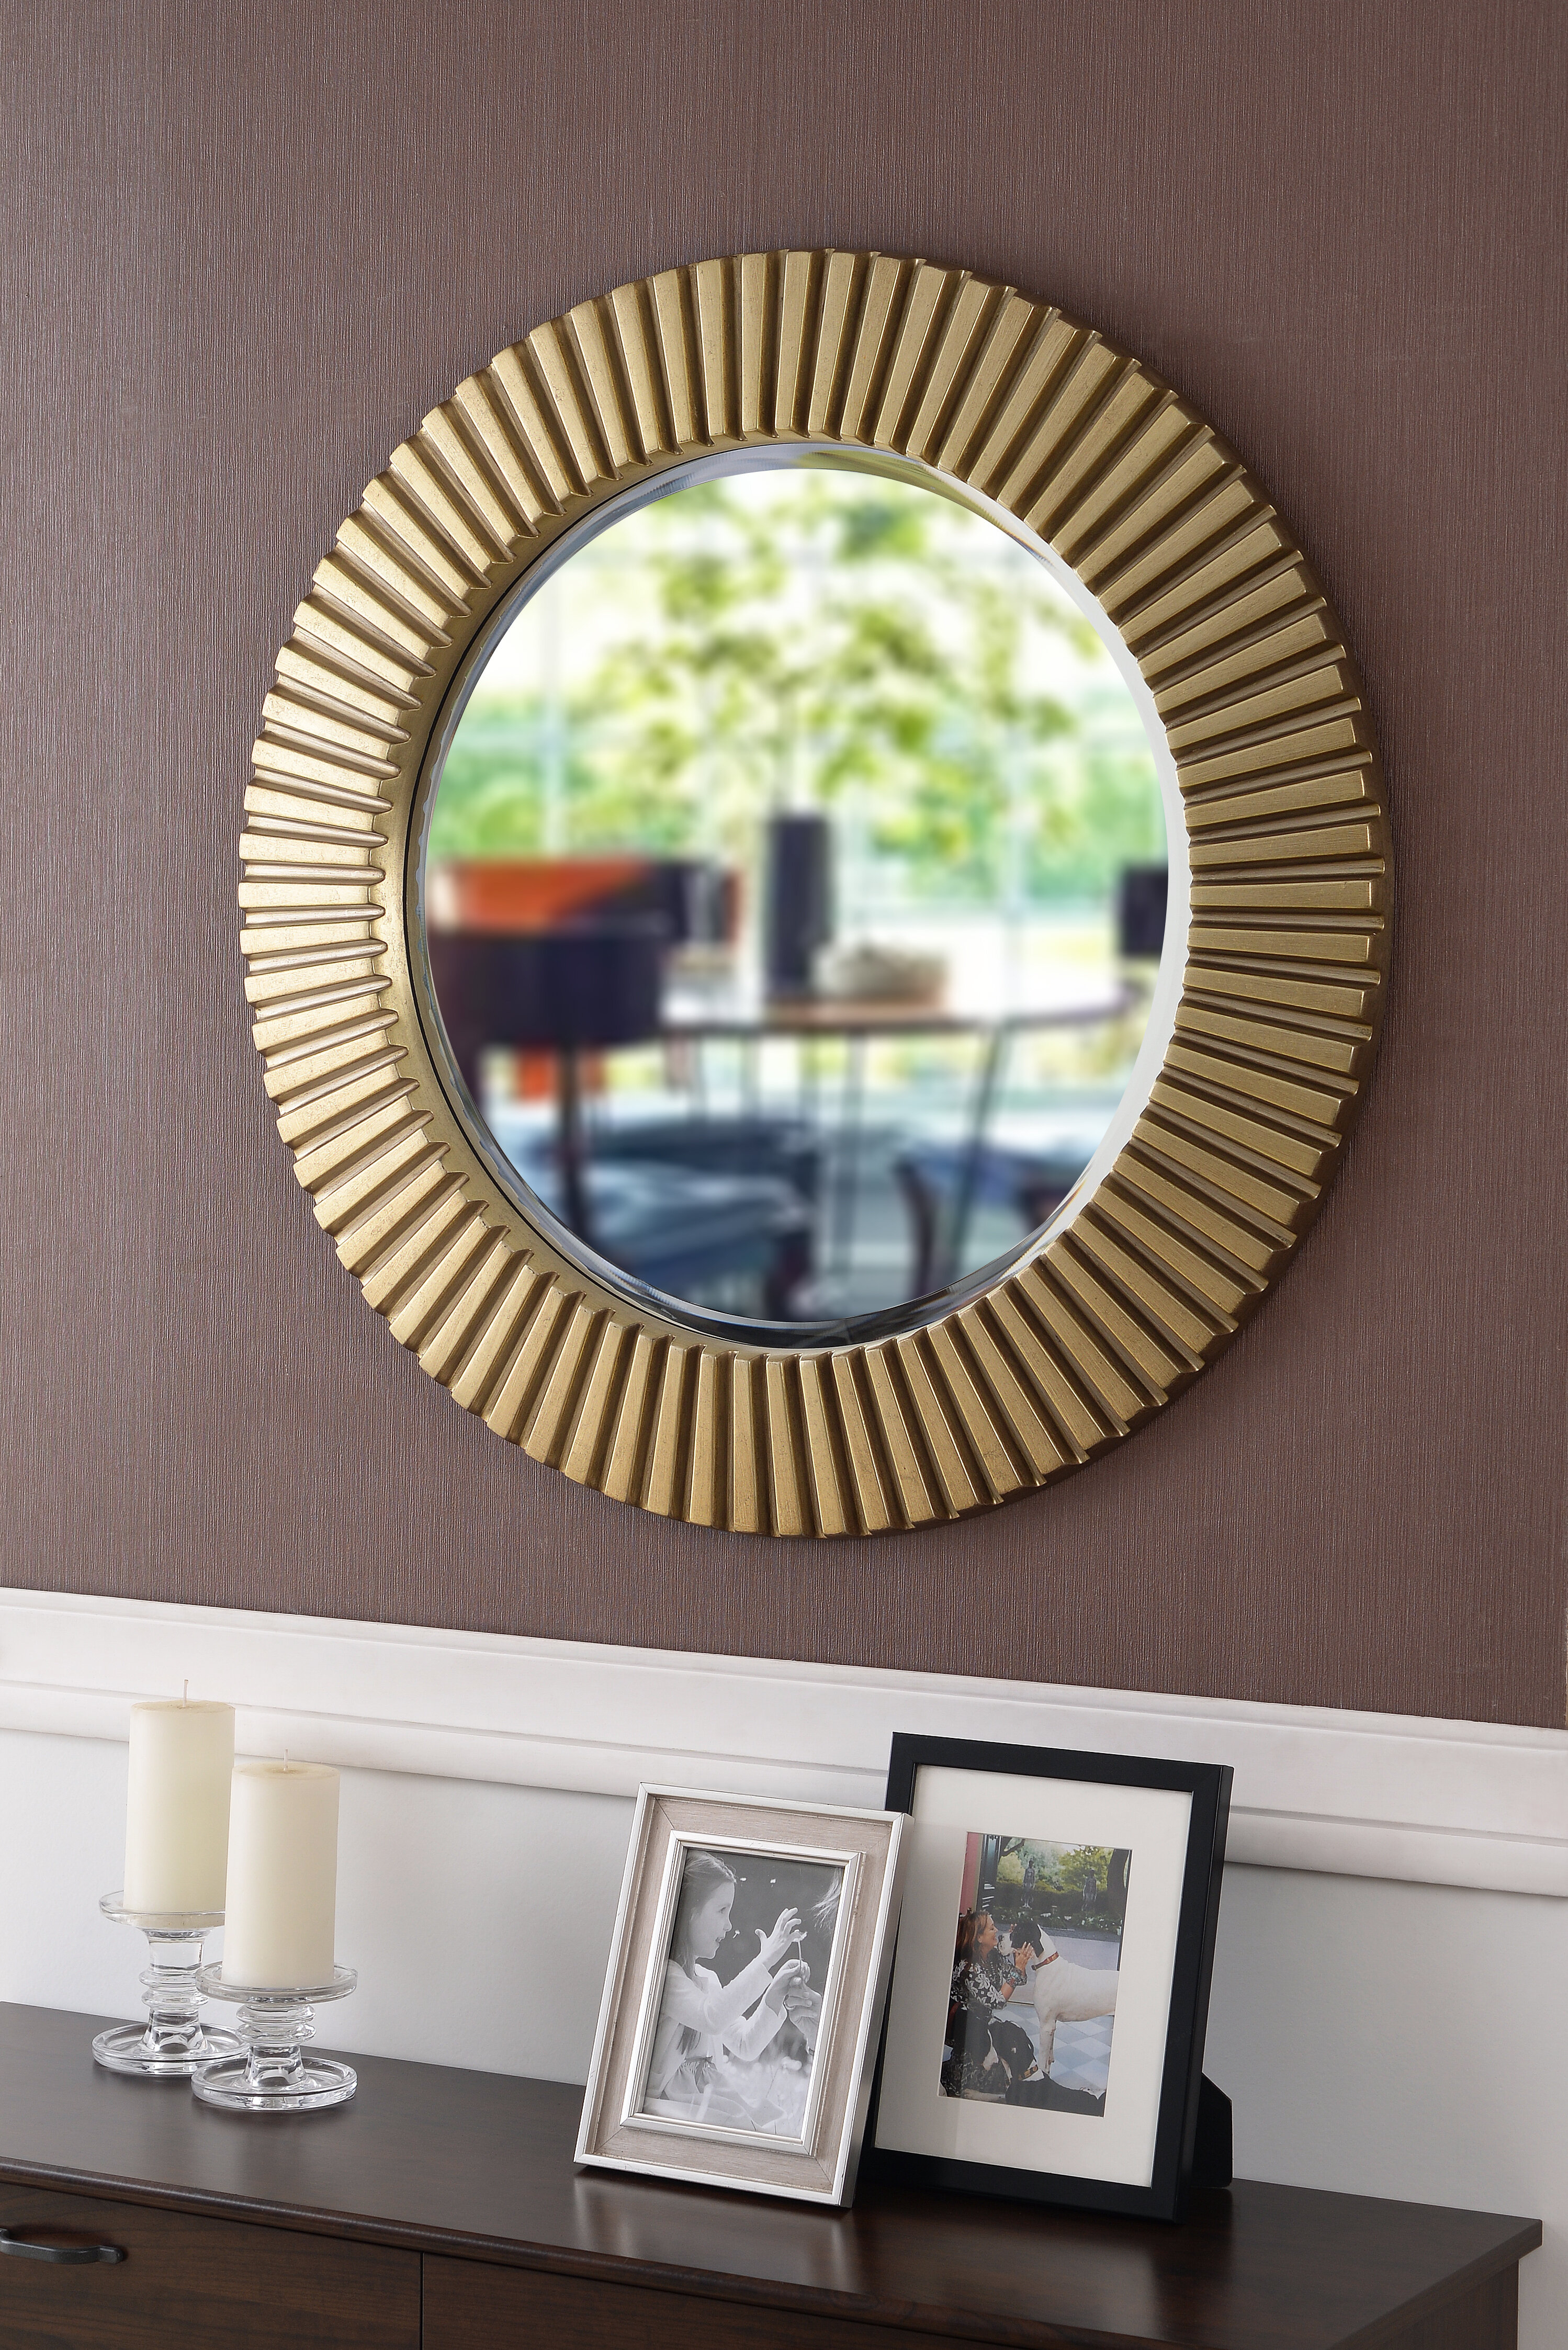 Round Eclectic Accent Mirror within Josephson Starburst Glam Beveled Accent Wall Mirrors (Image 19 of 22)